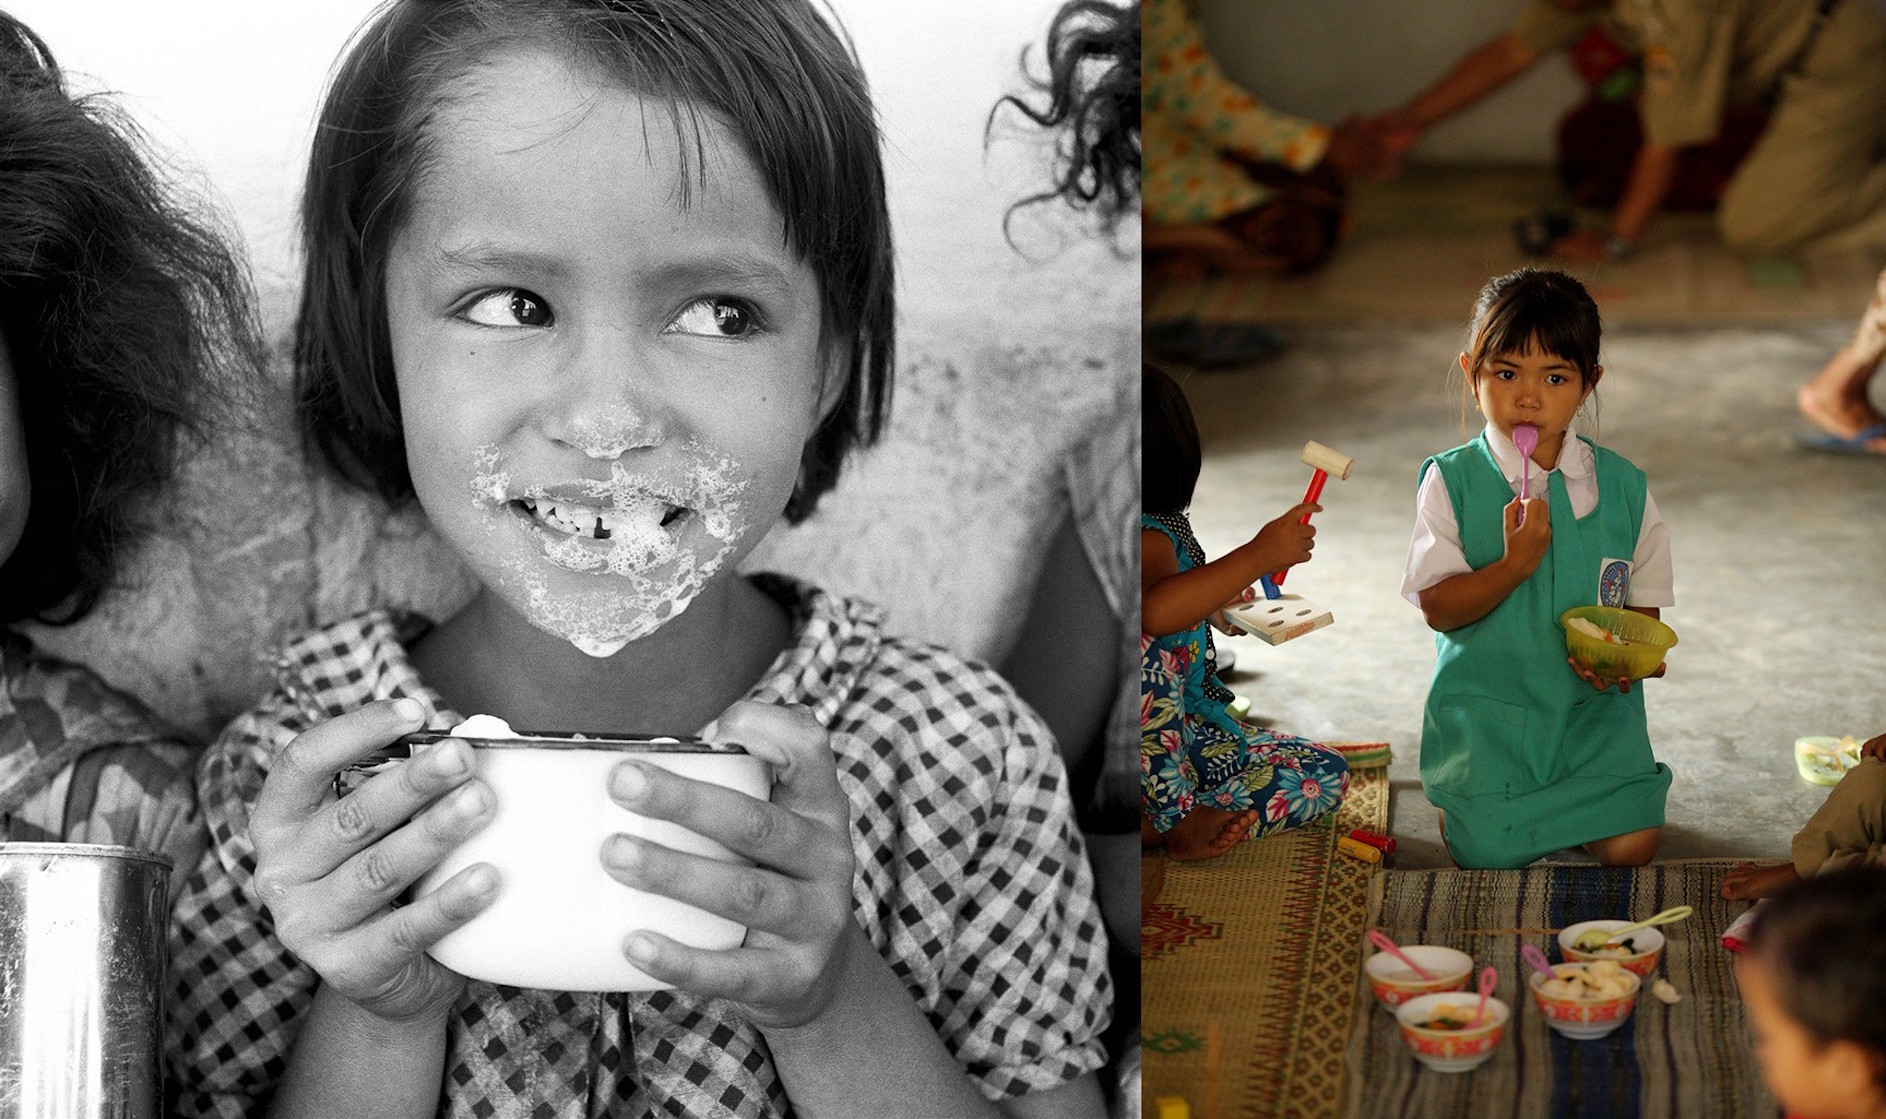 (Left) Circa 1950, approximate locale Guatemala, five-year-old Norma Salandia's mouth and nose are covered with foamy milk, after drinking from her cup. (Left) In 2015, a girl eats food prepared by 'cadres' who play an important role in Indonesia's health